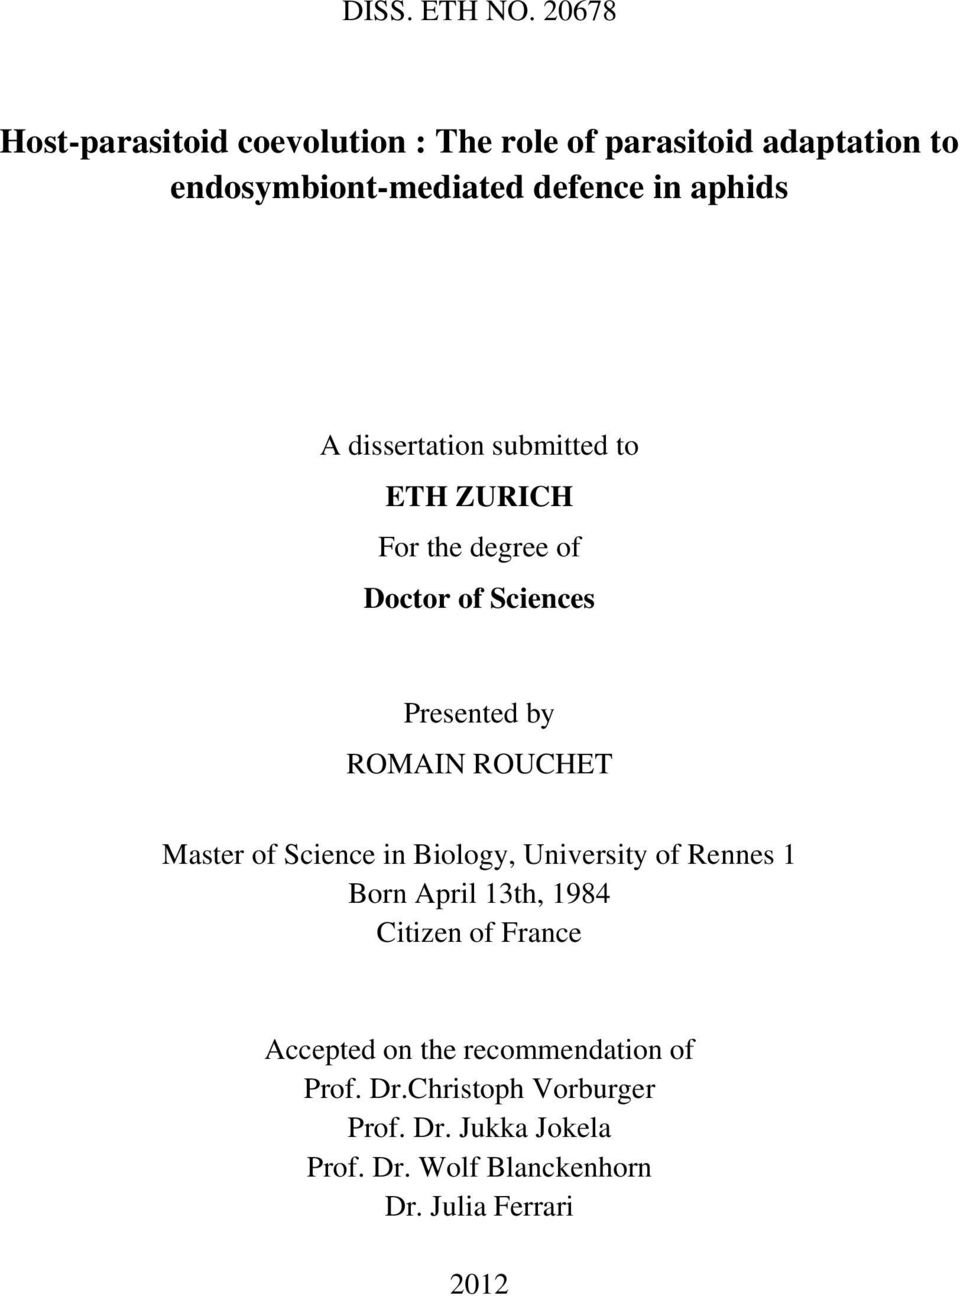 dissertation submitted to ETH ZURICH For the degree of Doctor of Sciences Presented by ROMAIN ROUCHET Master of